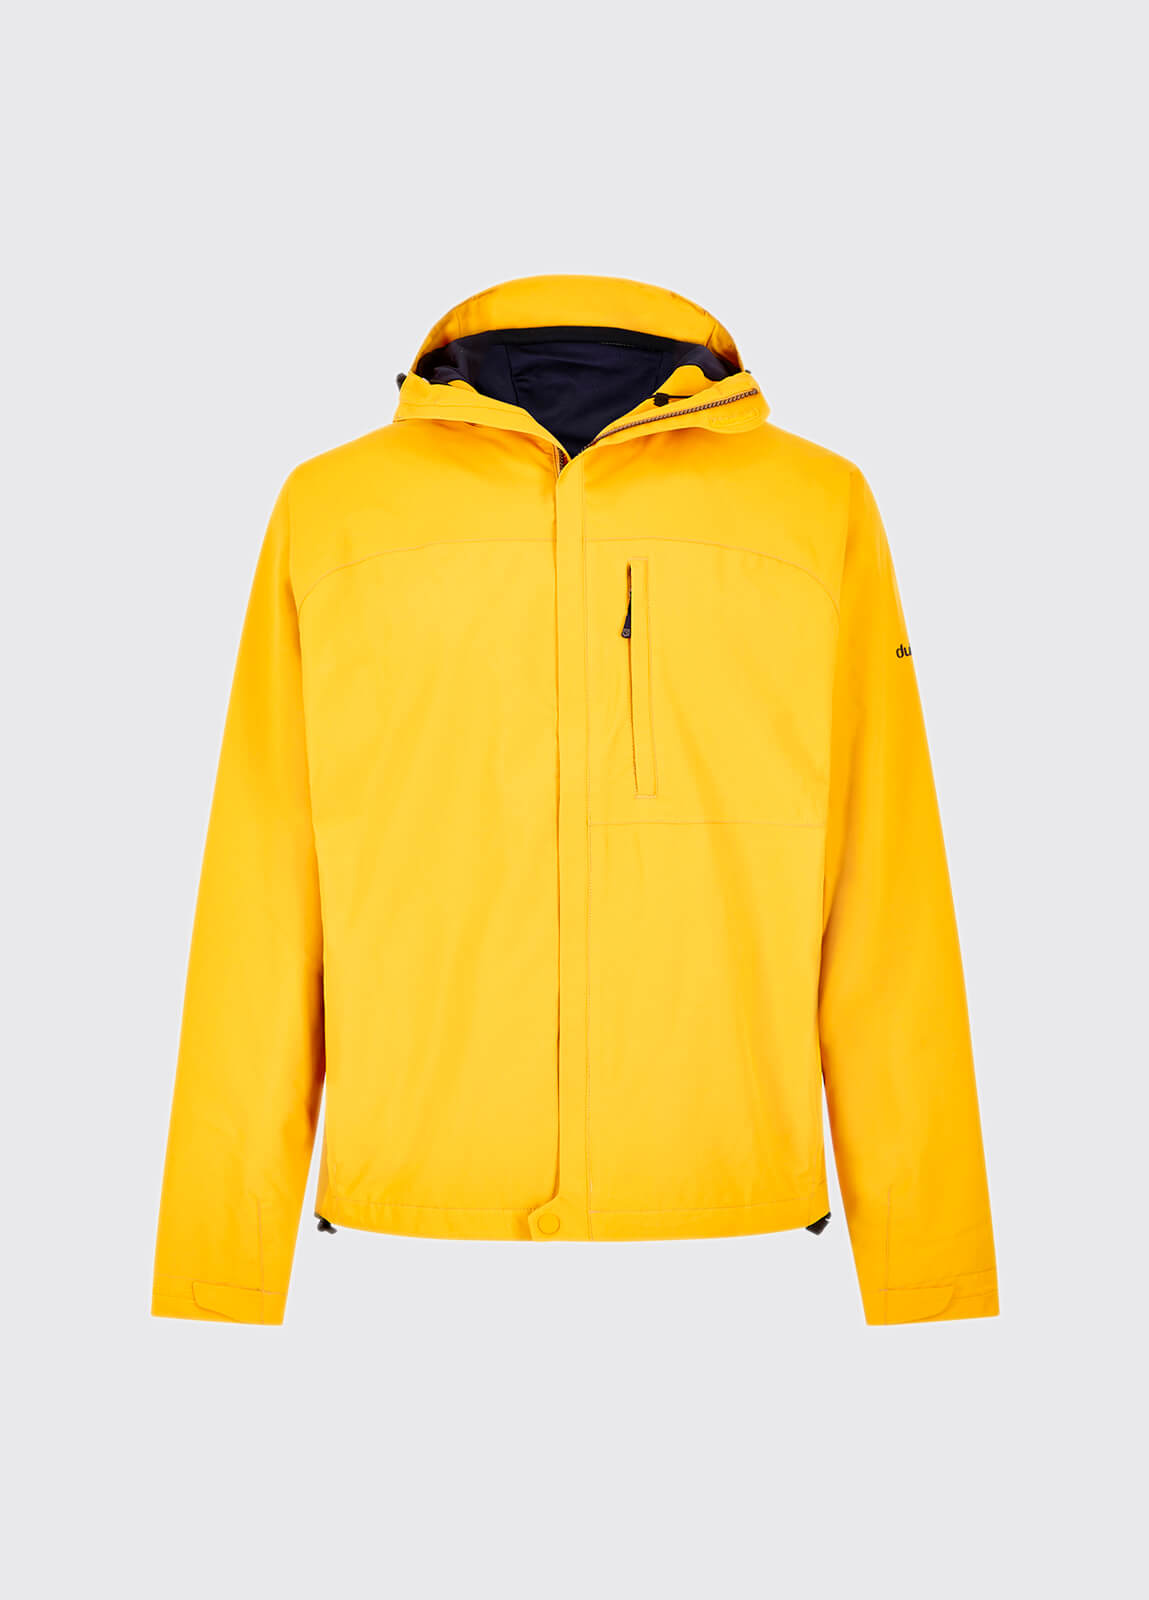 Ballycumber Jacket - Sunflower